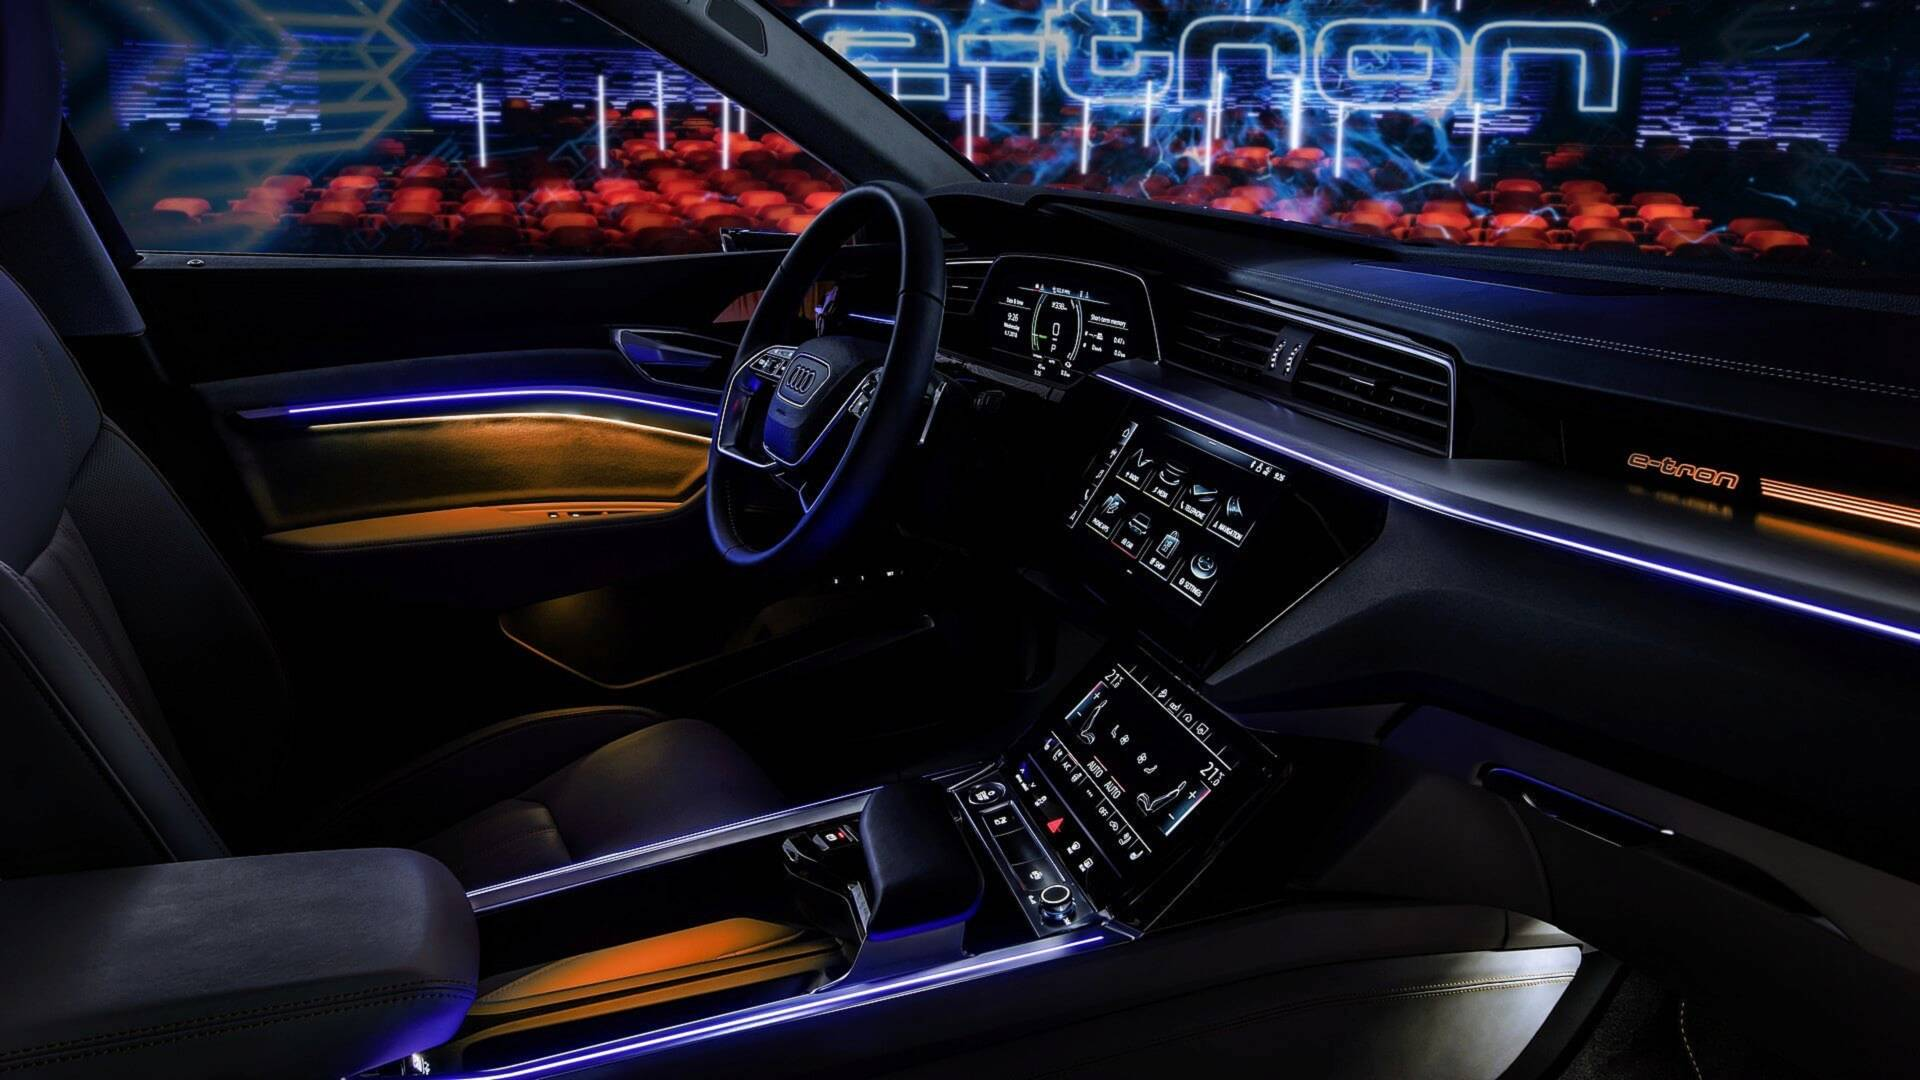 2019-audi-e-tron-debut-scheduled-for-september-17th-in-san-francisco_4